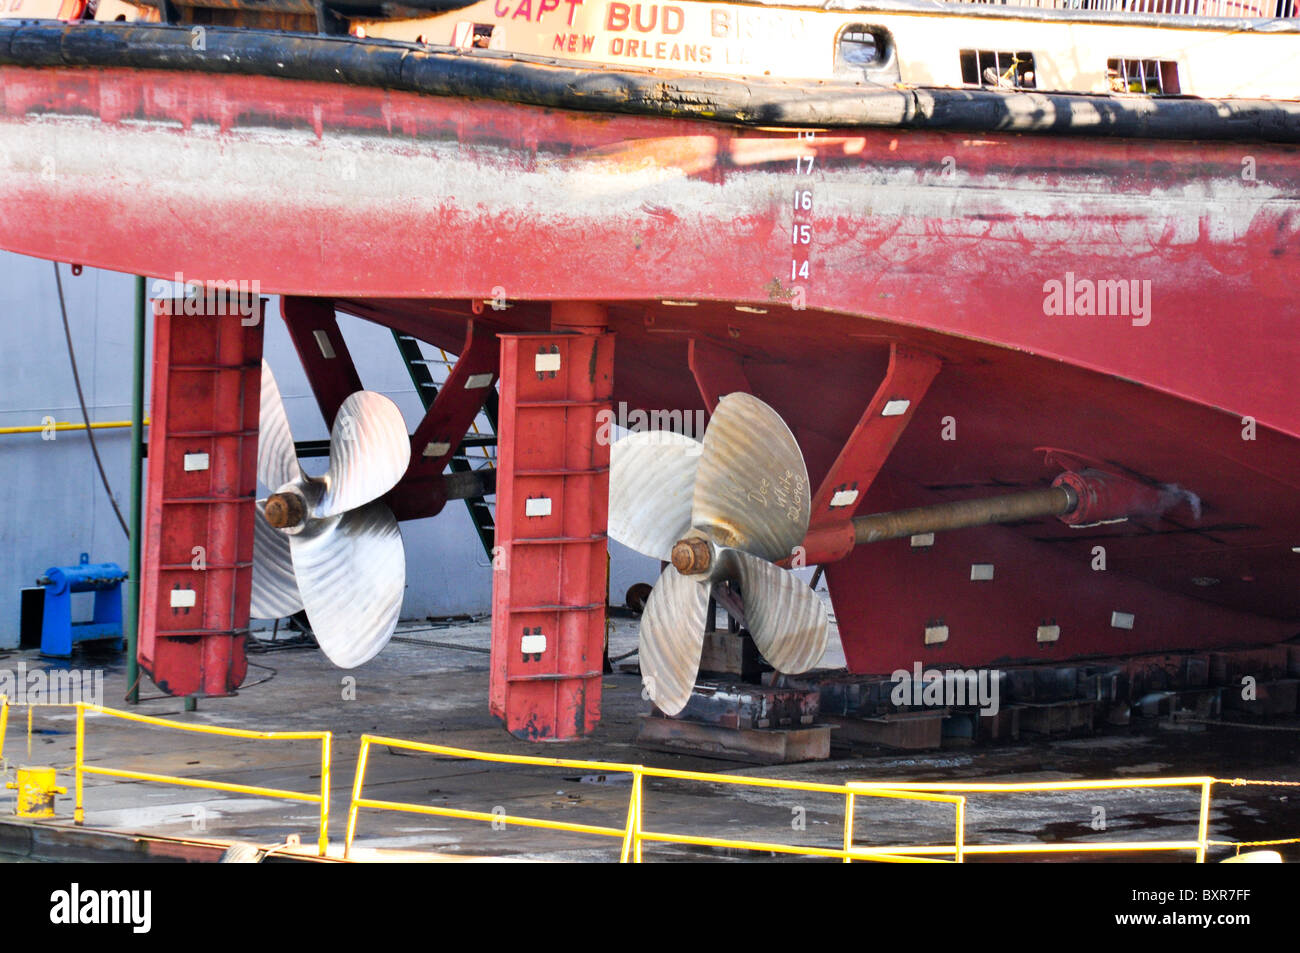 Propellers of tugboat in dry dock, Mississippi River, New Orleans, Louisiana - Stock Image